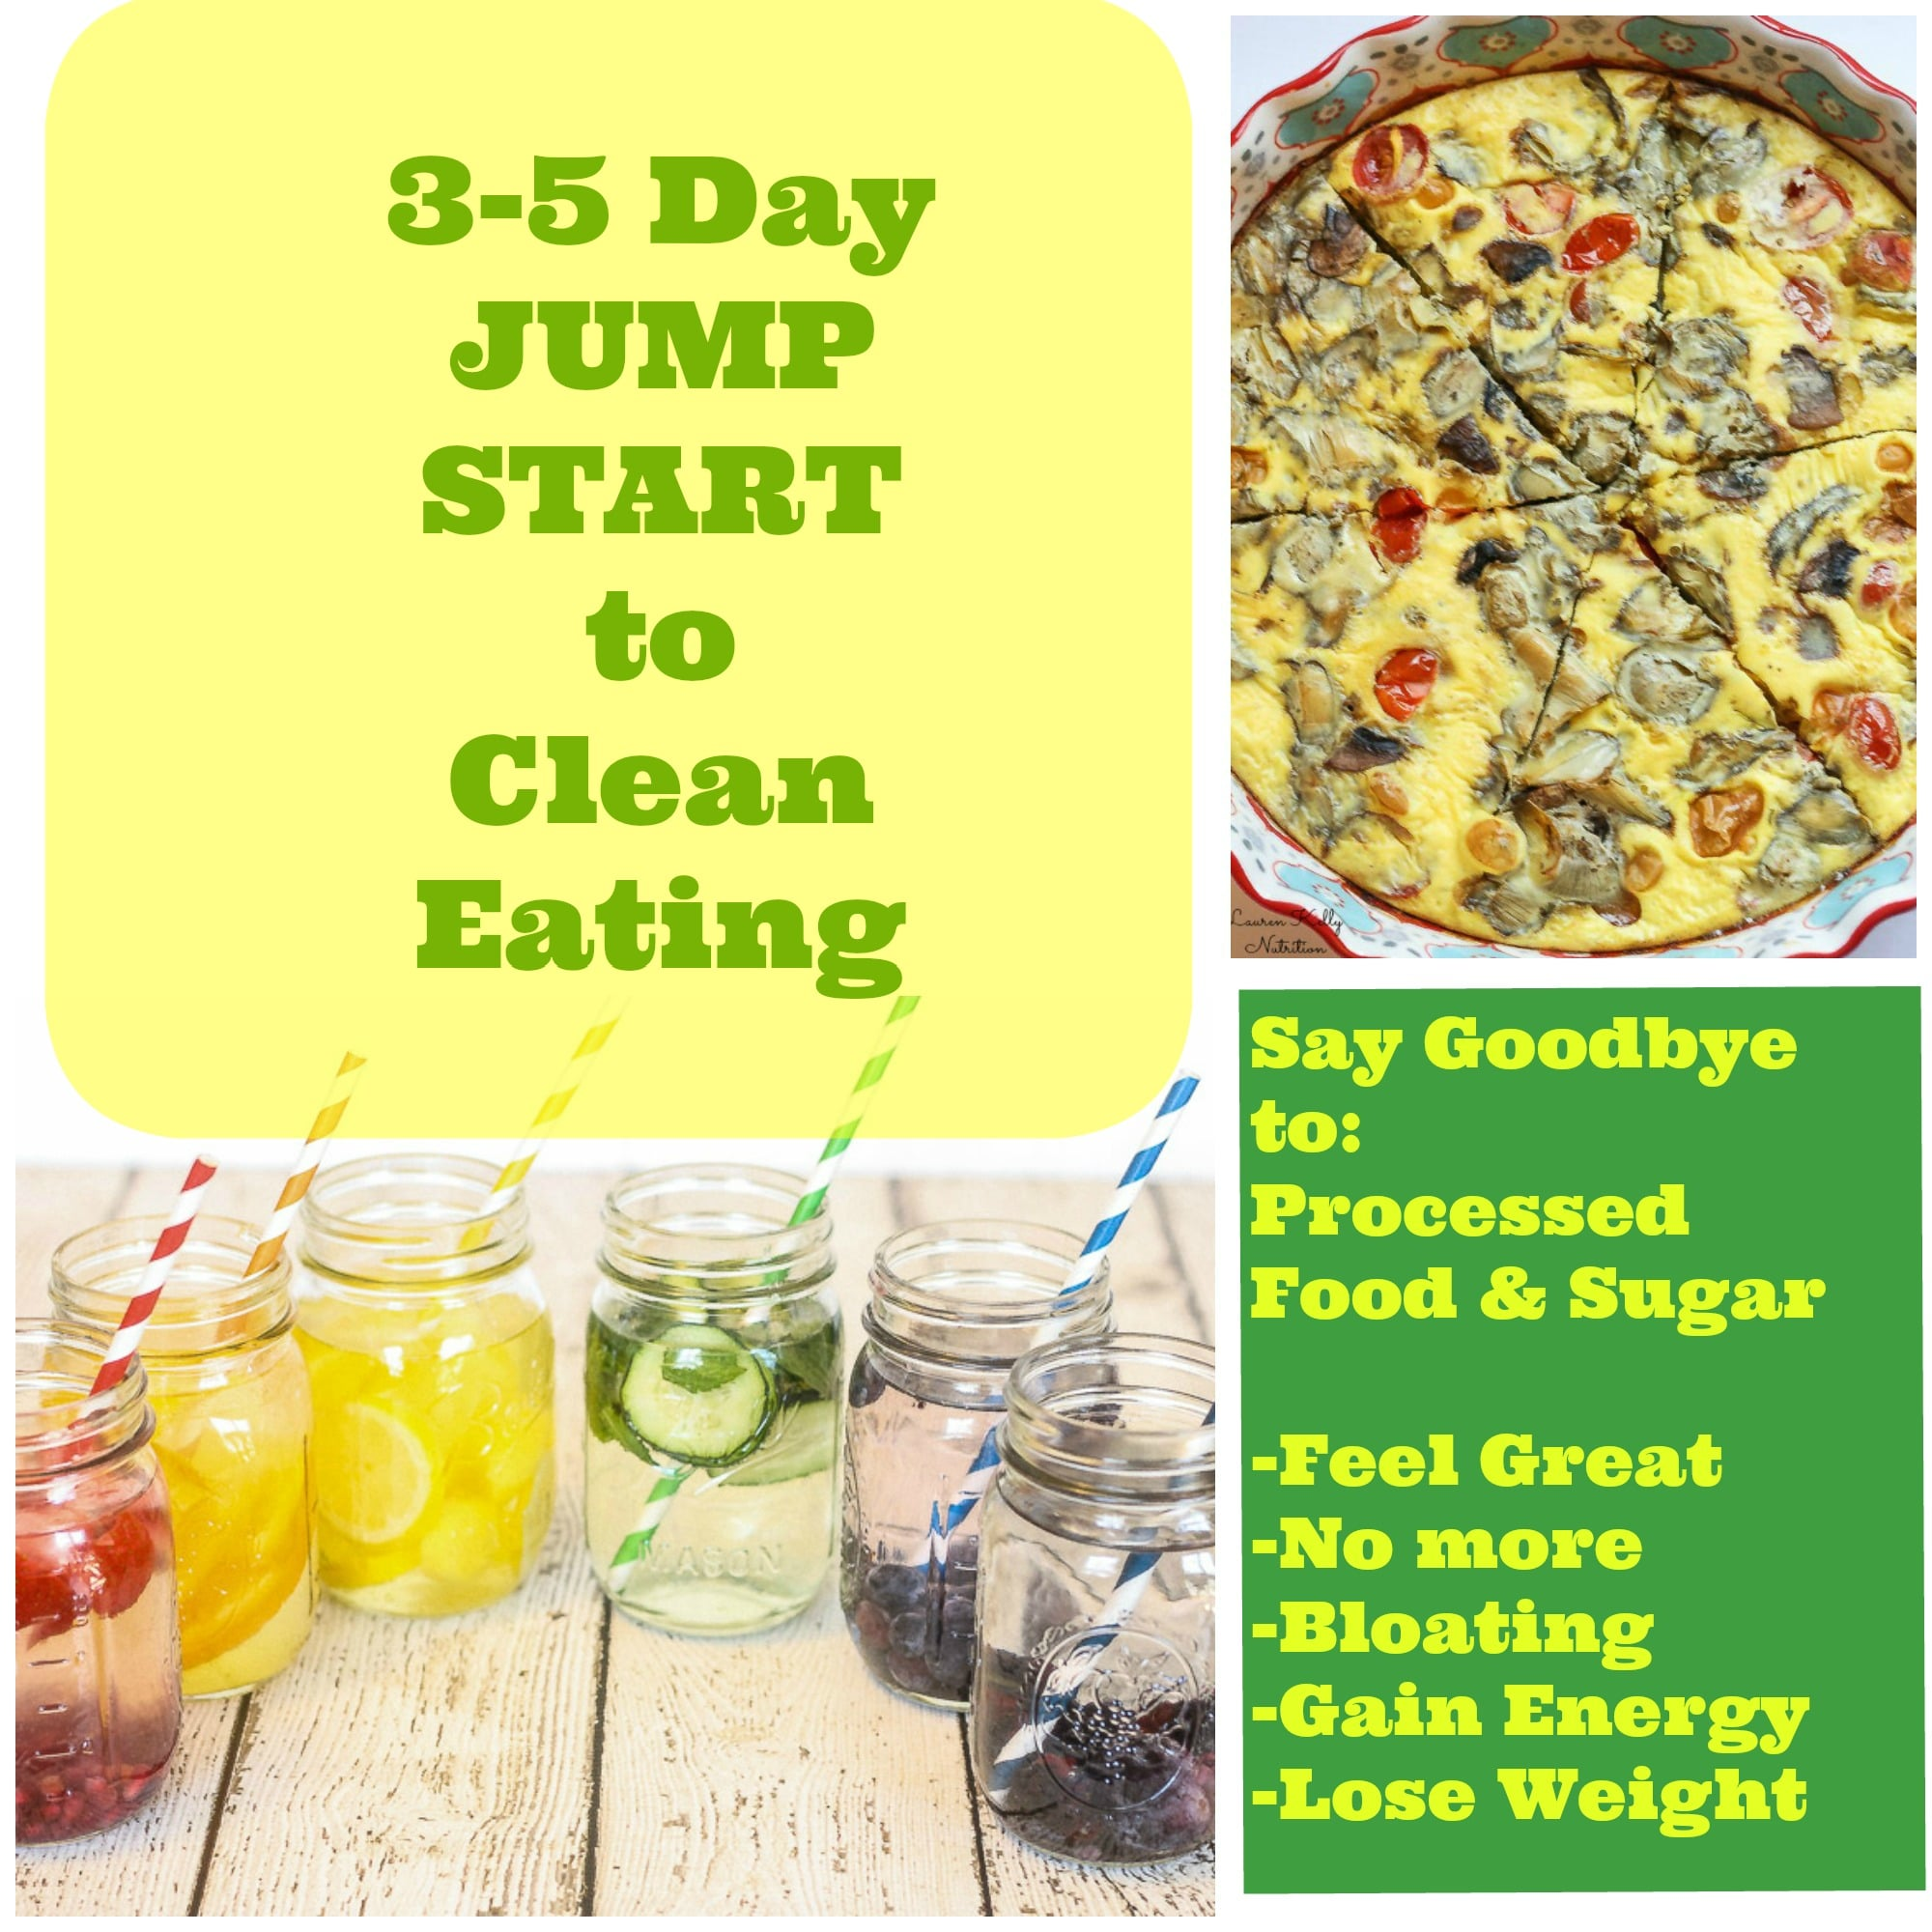 Three five day jump start to clean eating and grocery list 3 5 days to jump start into clean eating its so easy lose forumfinder